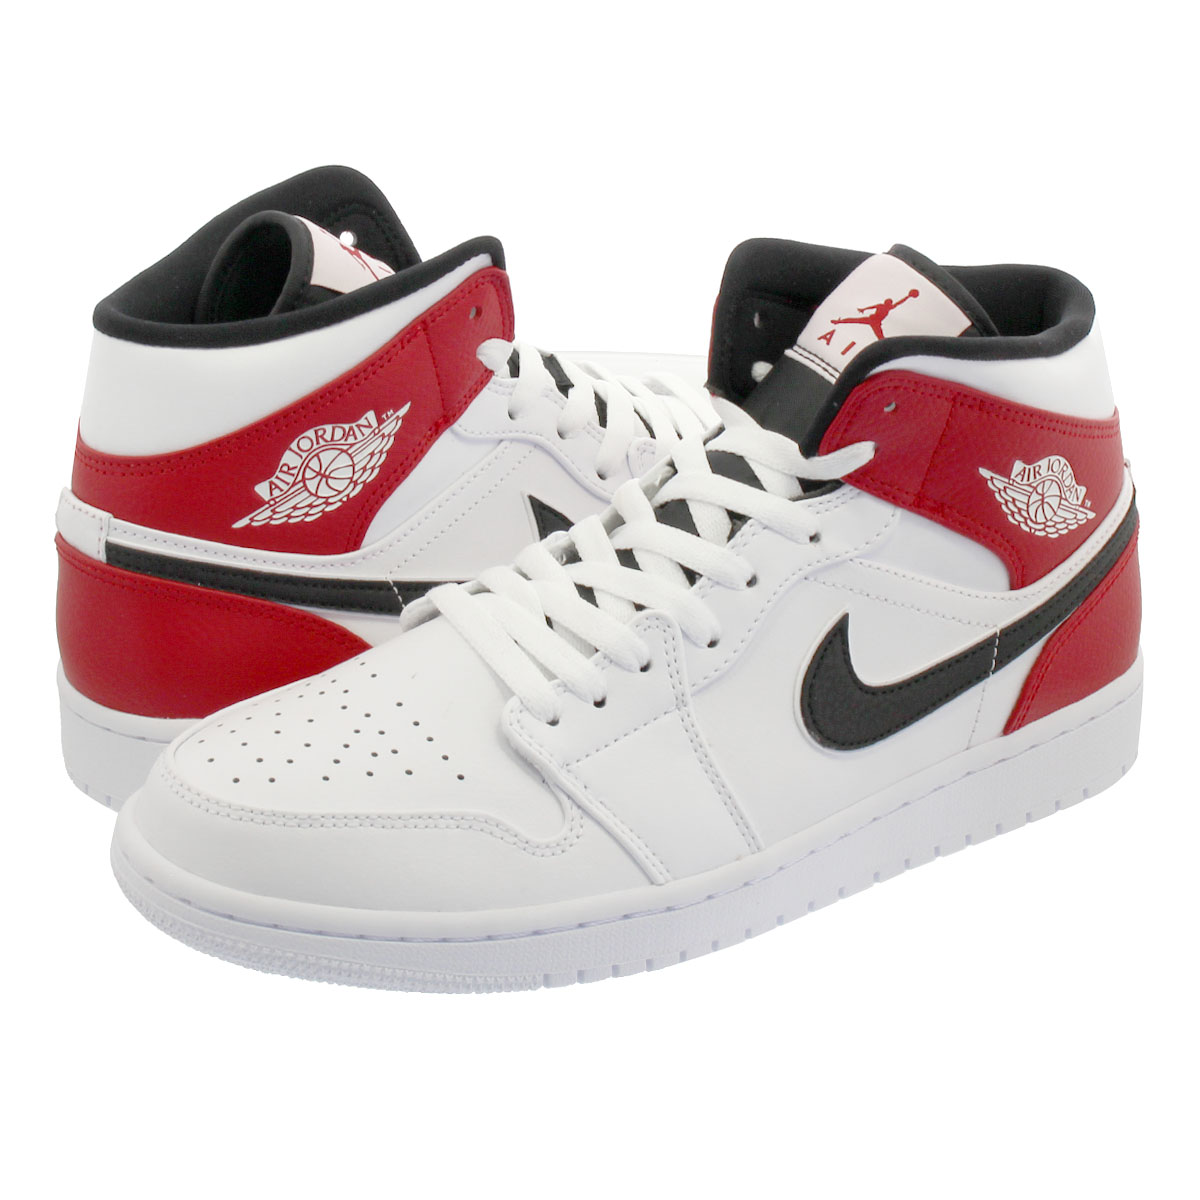 Women's Shoes Athletic Shoes Latest Collection Of Nike Air Jordan 1 Mid Gs White Black Gym Red Chicago Kids Womens Aj1 554725-116